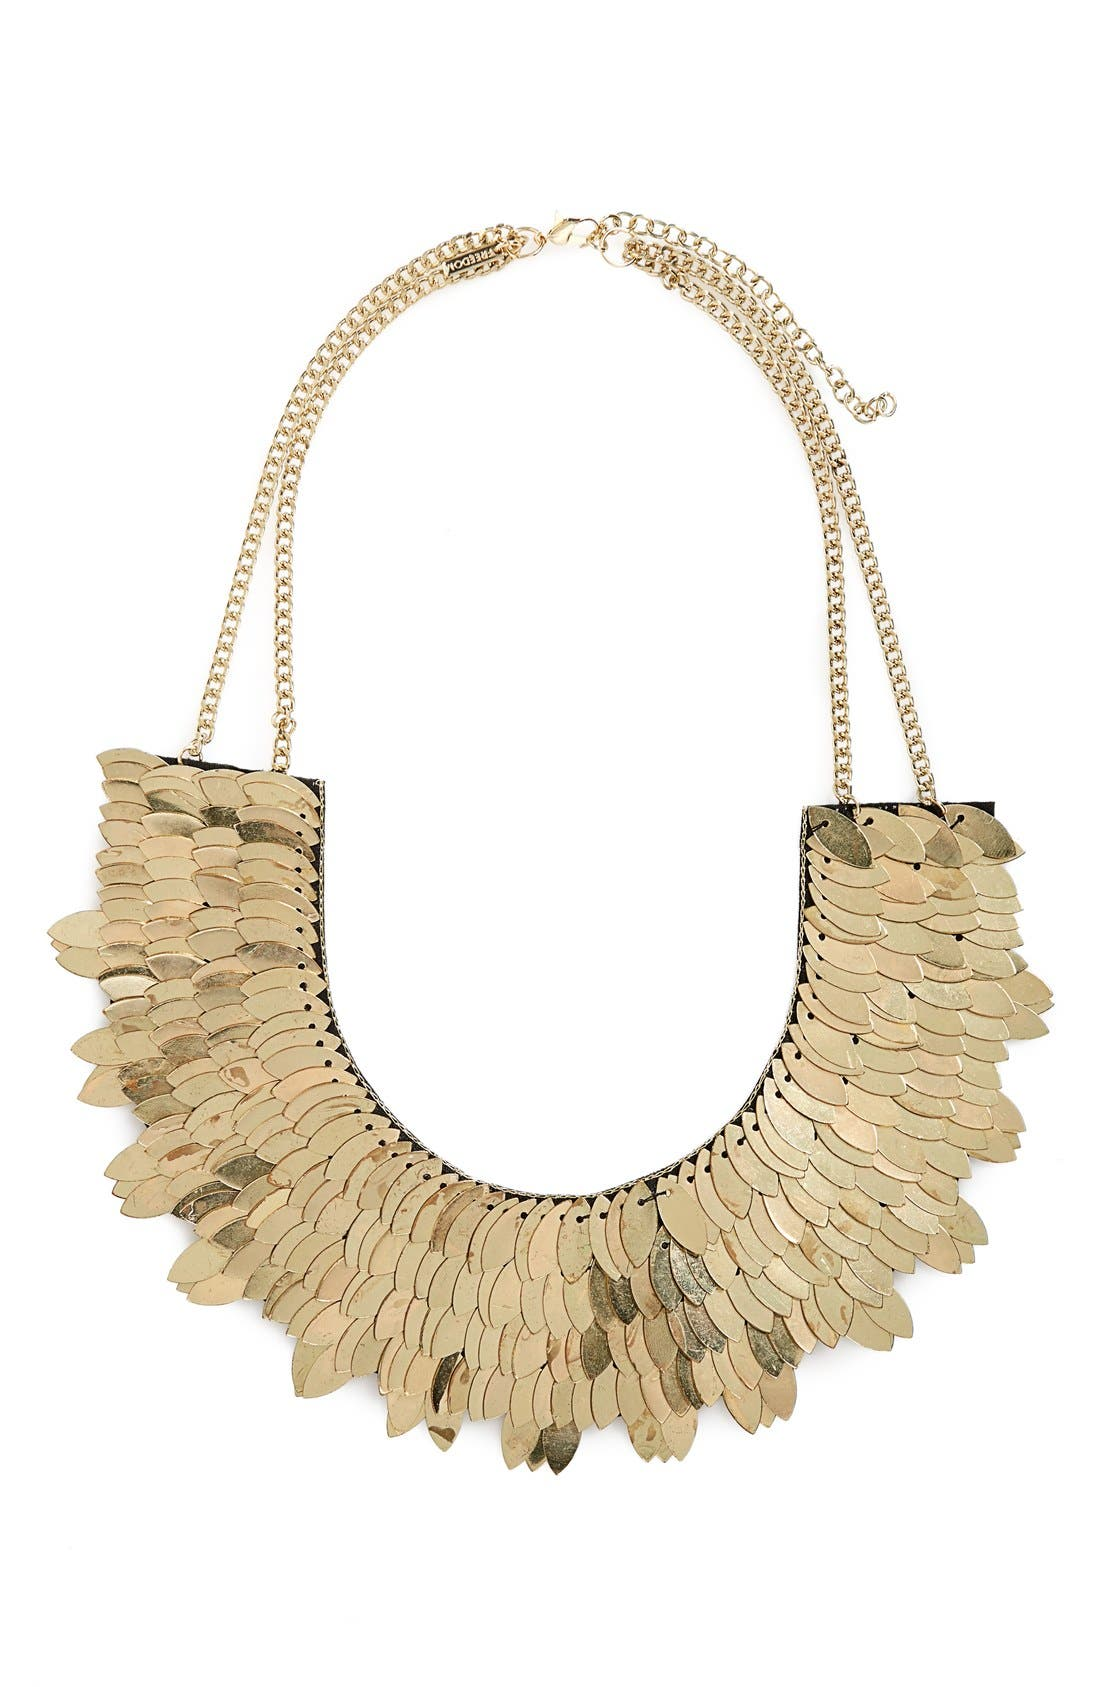 Alternate Image 1 Selected - Topshop Metallic Leaf Necklace